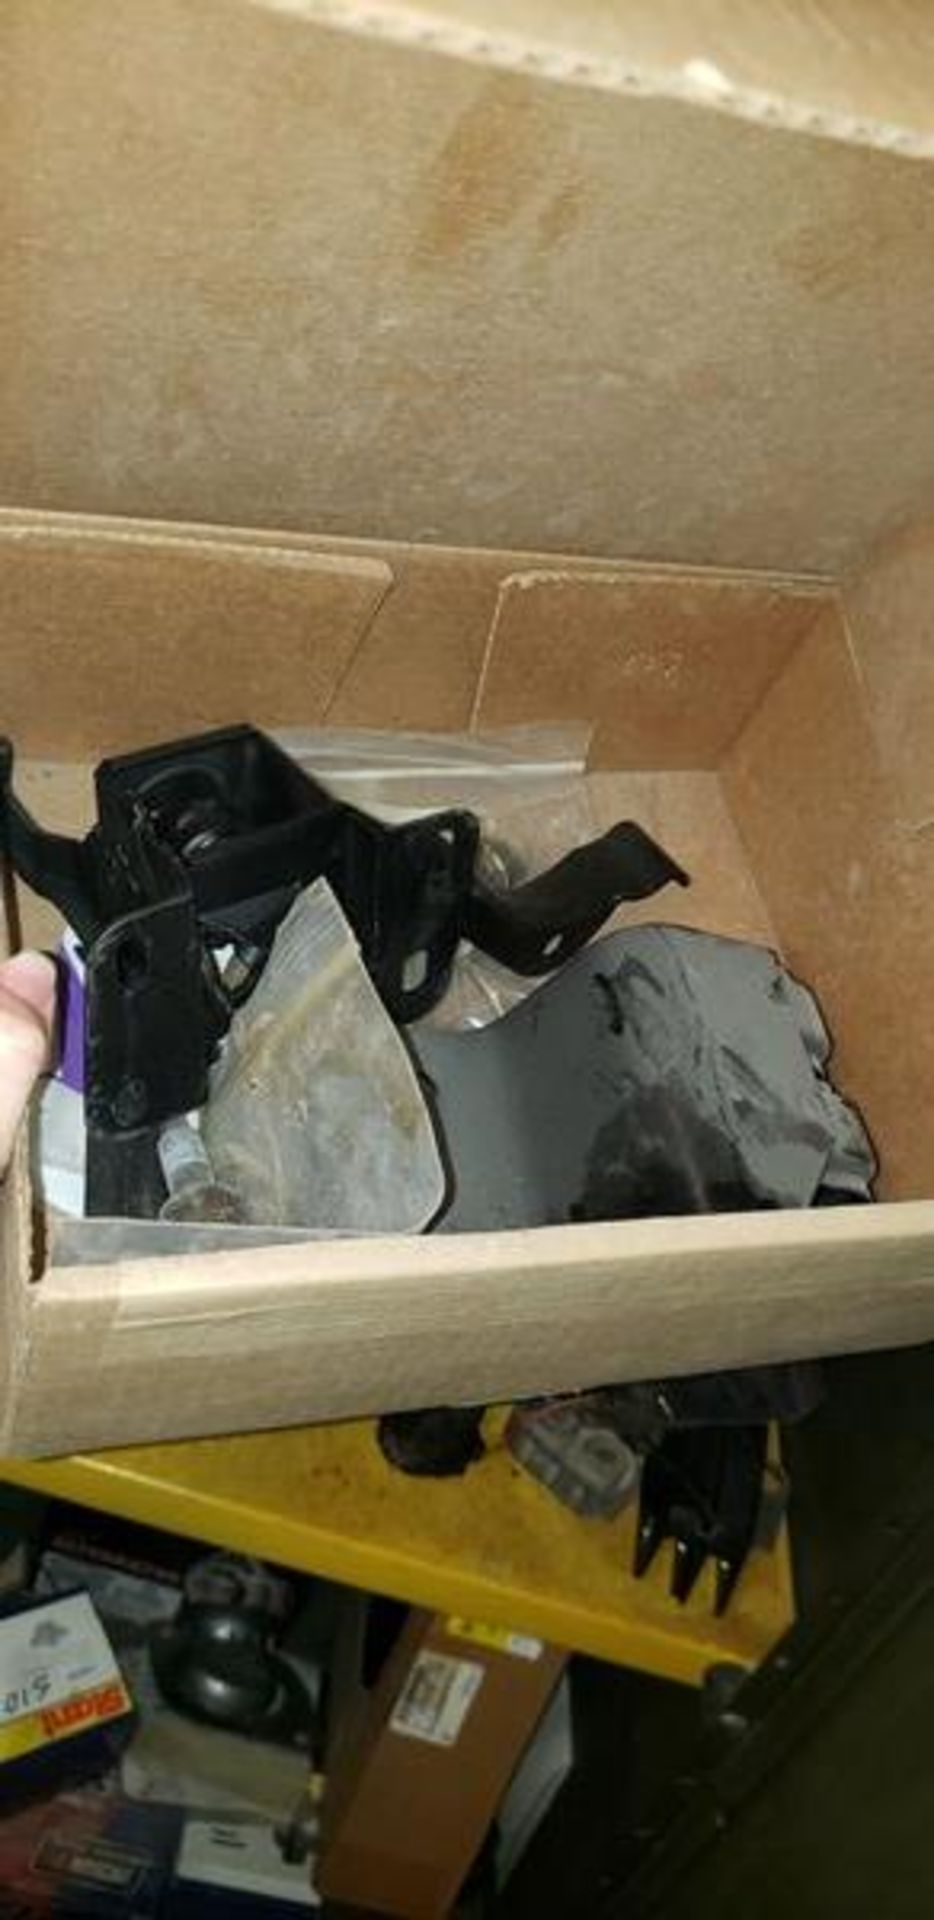 LOT OF S-10 AND PLOW PARTS WITH 2 DOOR METAL STORAGE CABINENT - Image 5 of 16